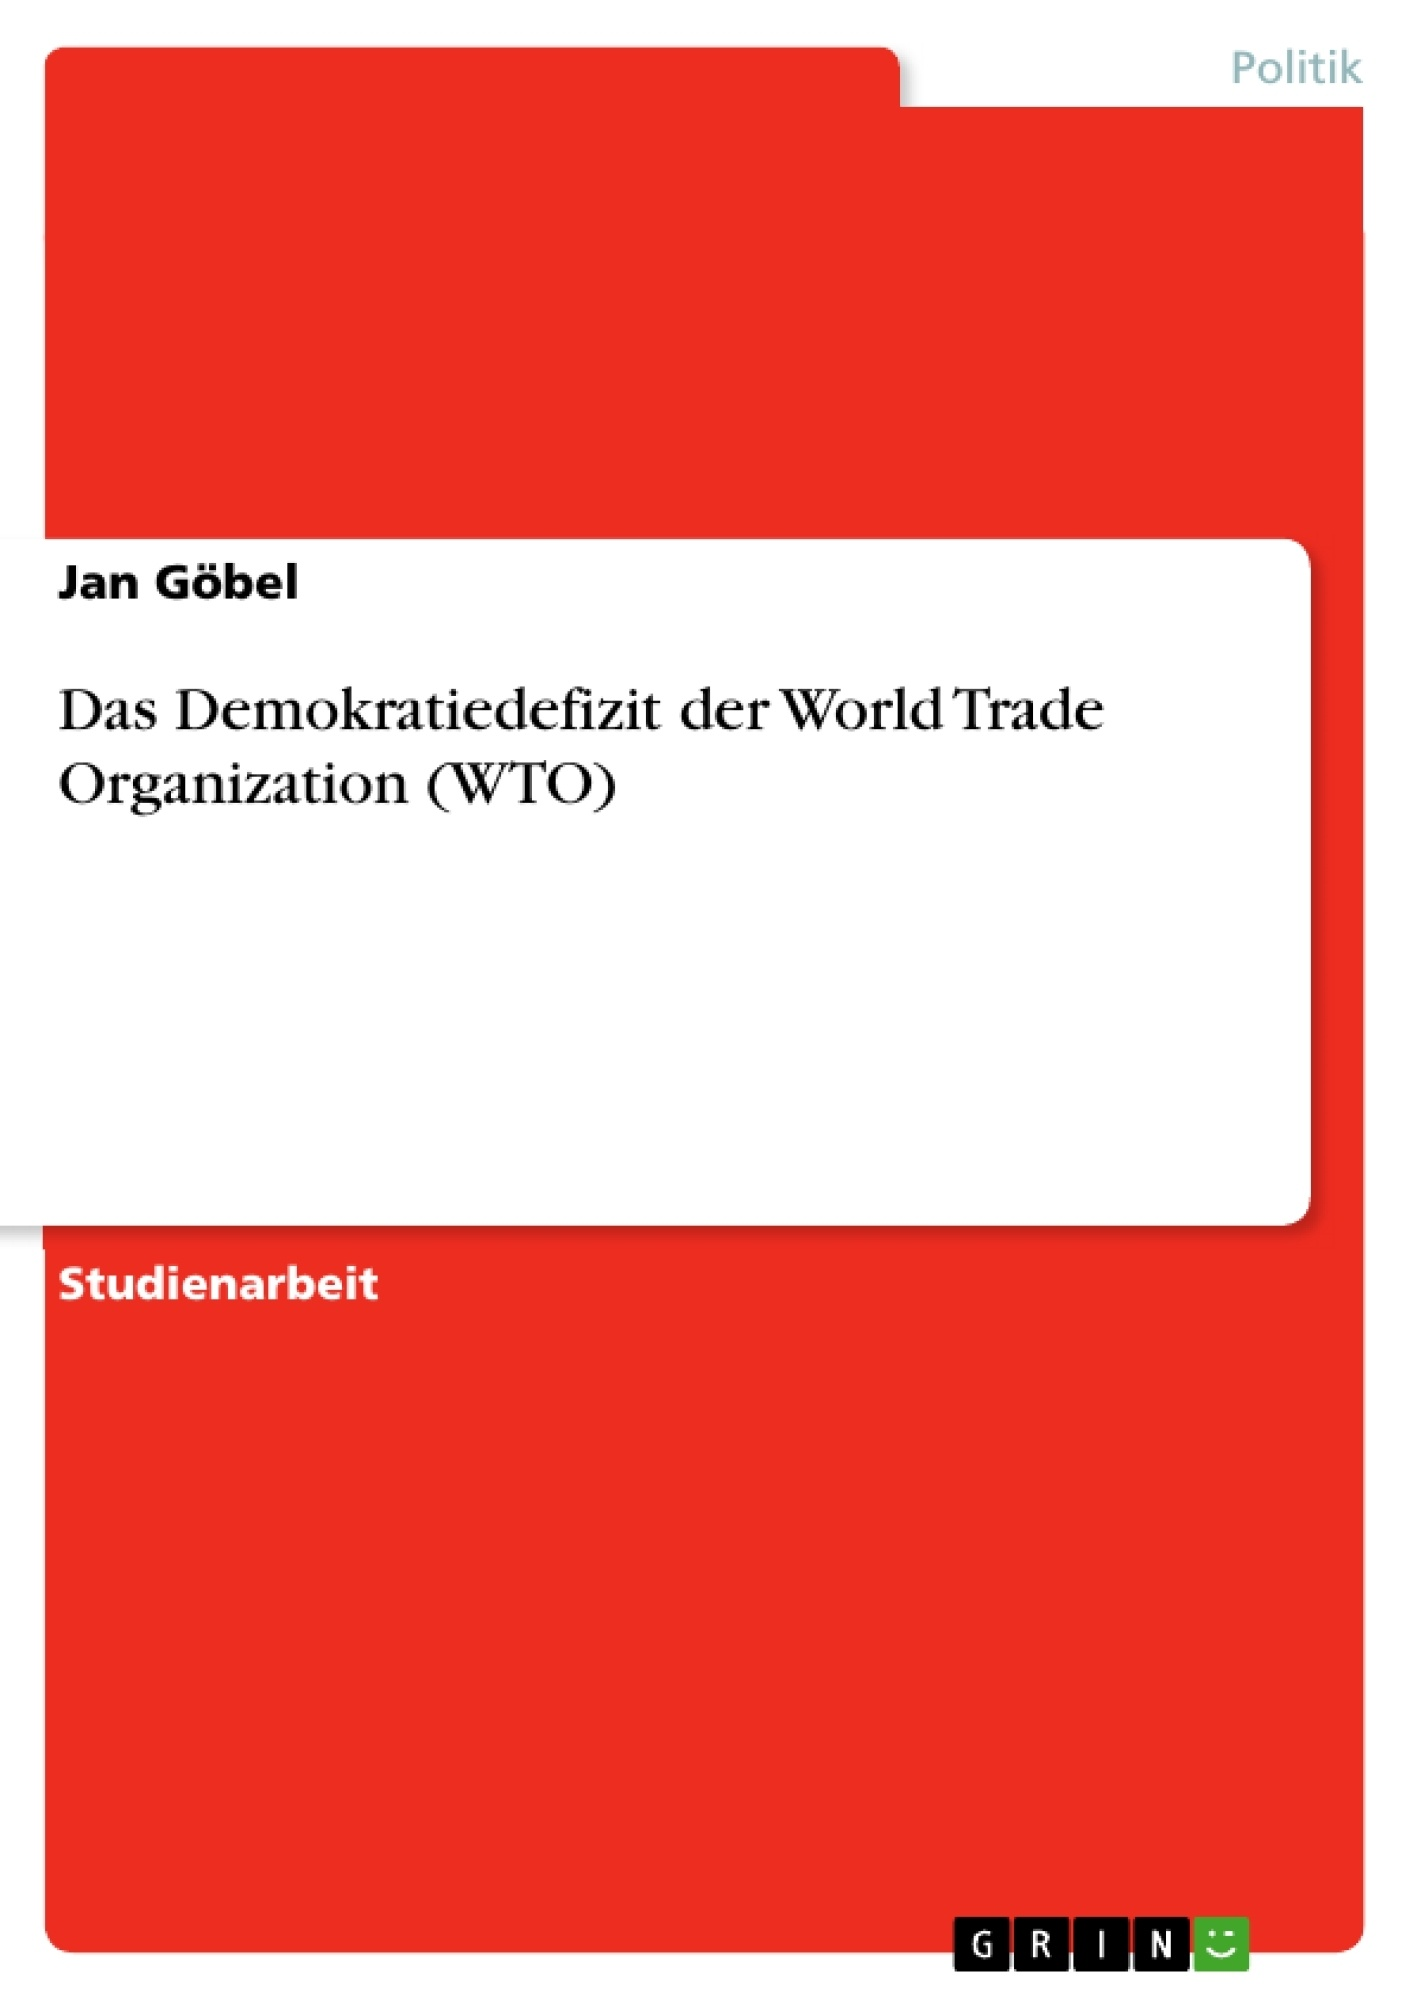 Titel: Das Demokratiedefizit der World Trade Organization (WTO)